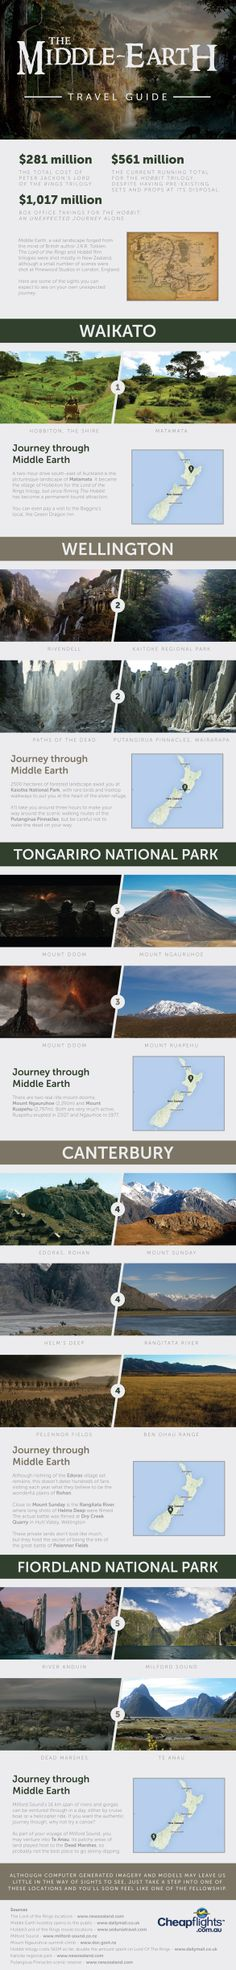 Middle Earth Travel Guide - Infographic